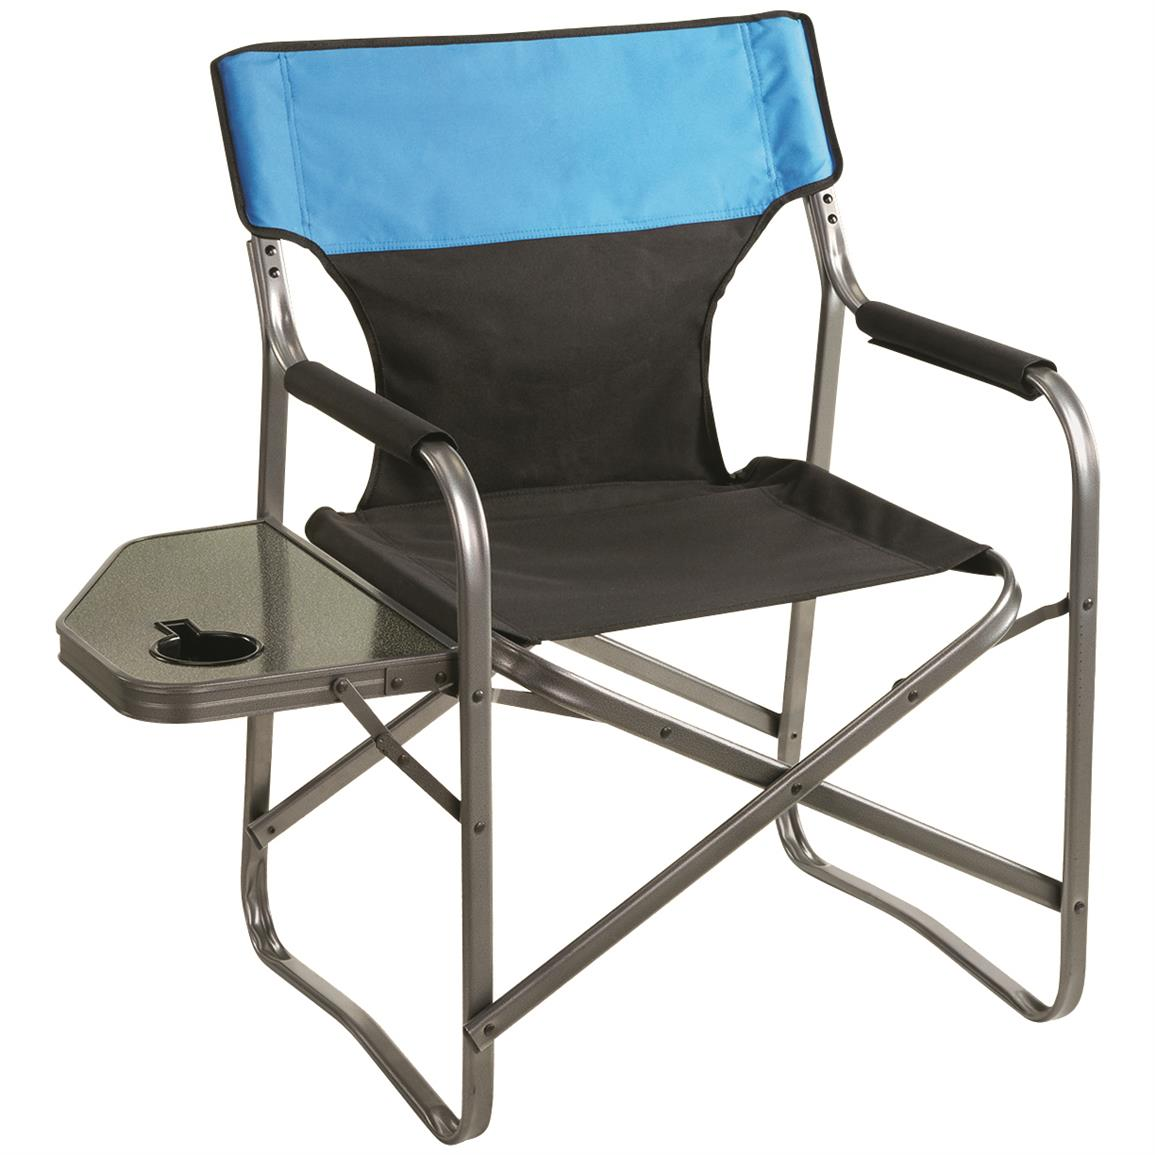 Camping Directors Chair Guide Gear Oversized Directors Chair 500 Lb Capacity